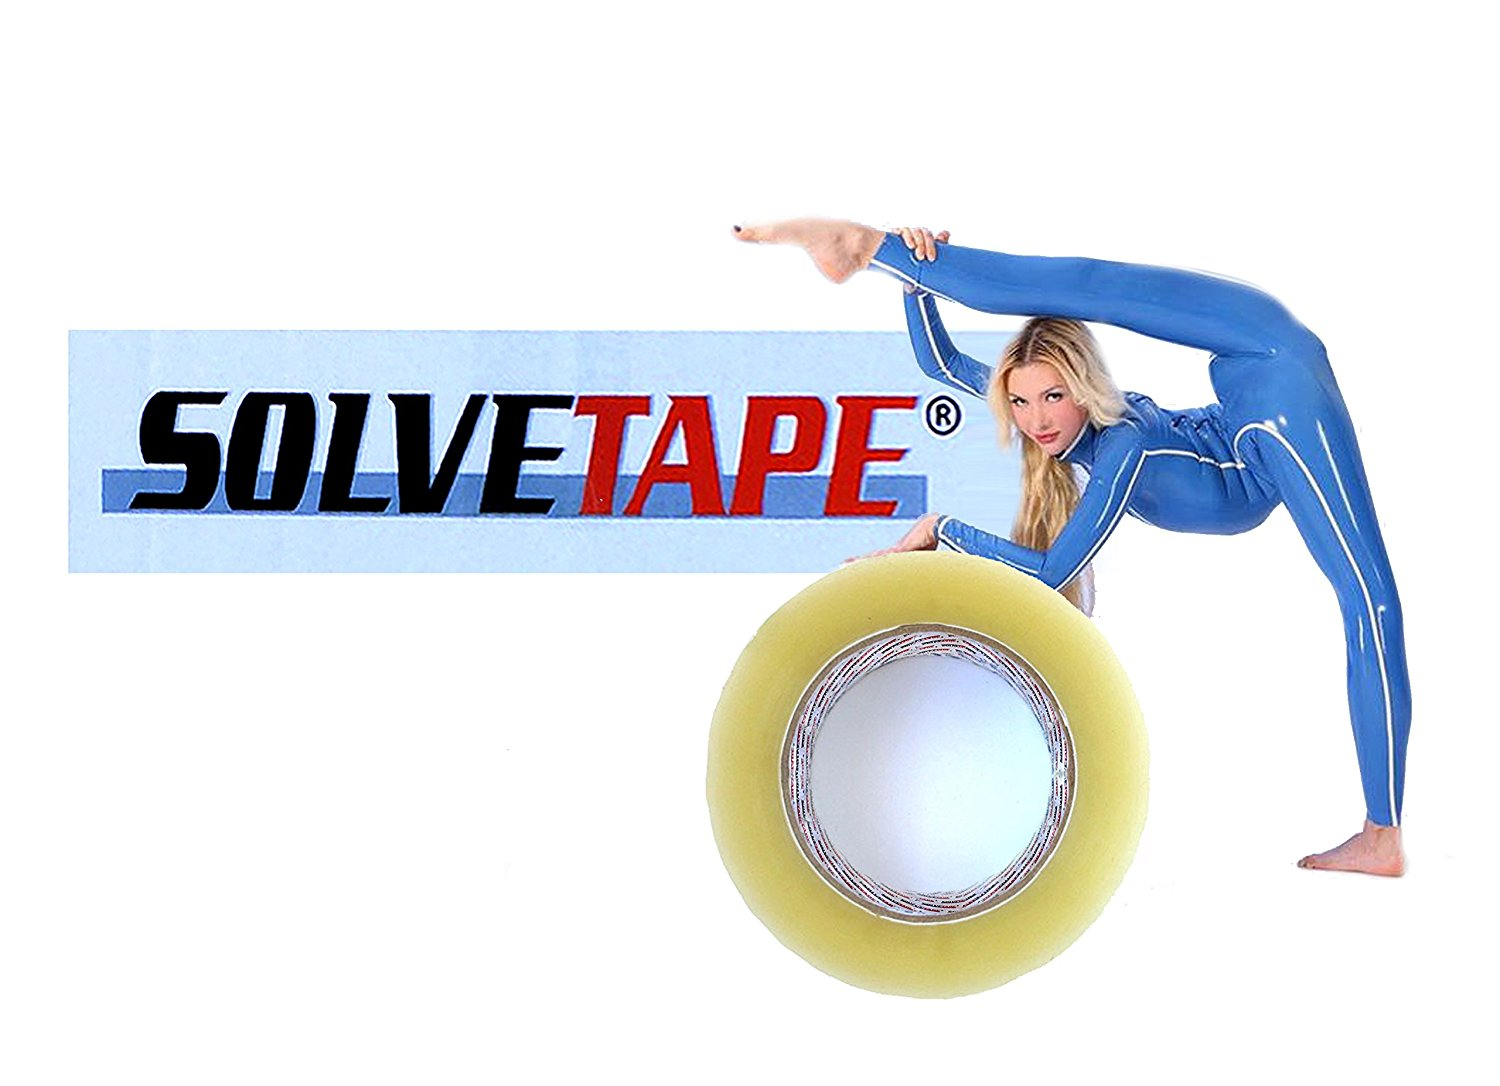 CLEAR PACKING TAPE - 54.6 Yards Per Roll- 1.88 Mill Thick-Long Lasting, Stronger & Thicker Adhesive Industrial Depot Tapes Perfect for Packaging Shipping, Office & Storage (1 Roll / 1.88 Mil Thick)